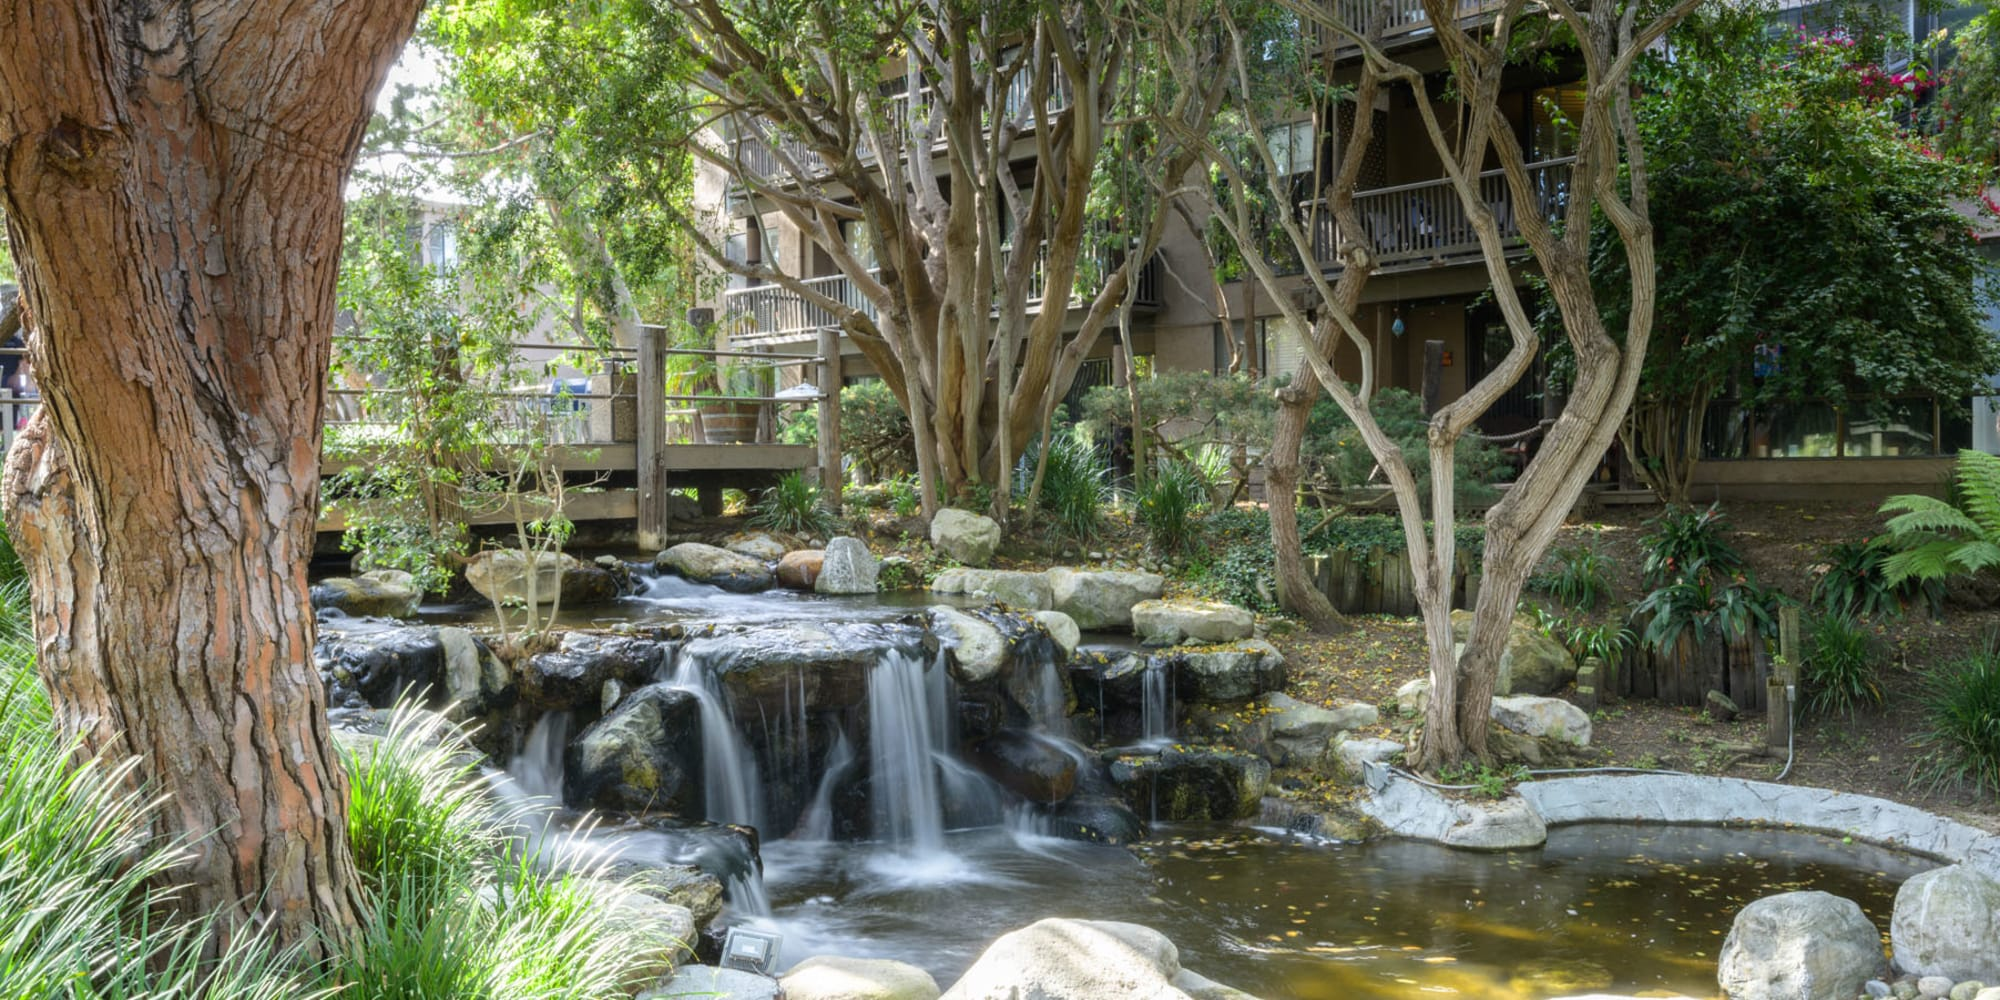 Water feature winding among mature trees at Mariners Village in Marina del Rey, California